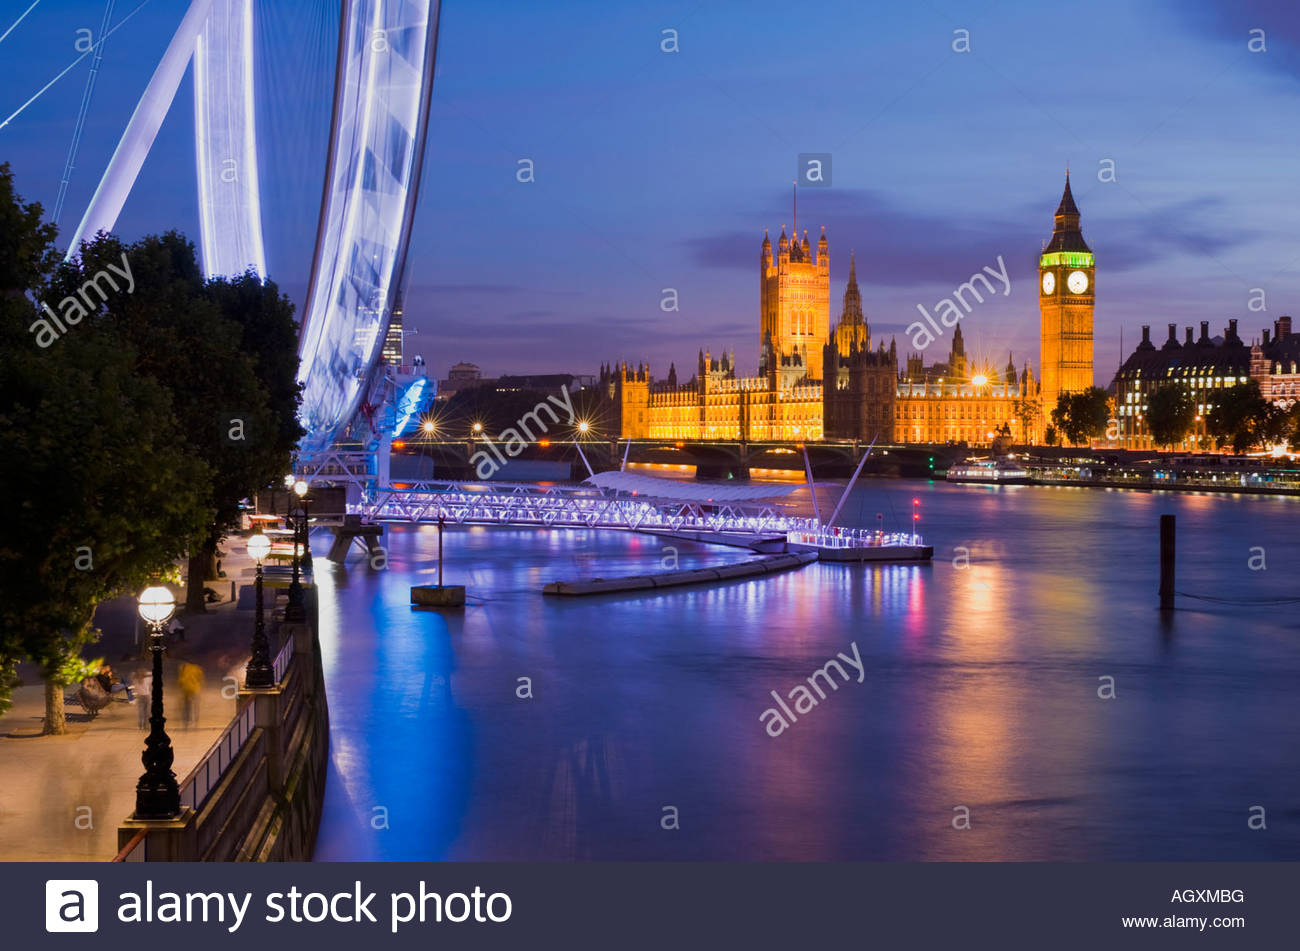 The London Eye and the Houses of Parliament at night, London, England. - Stock Image